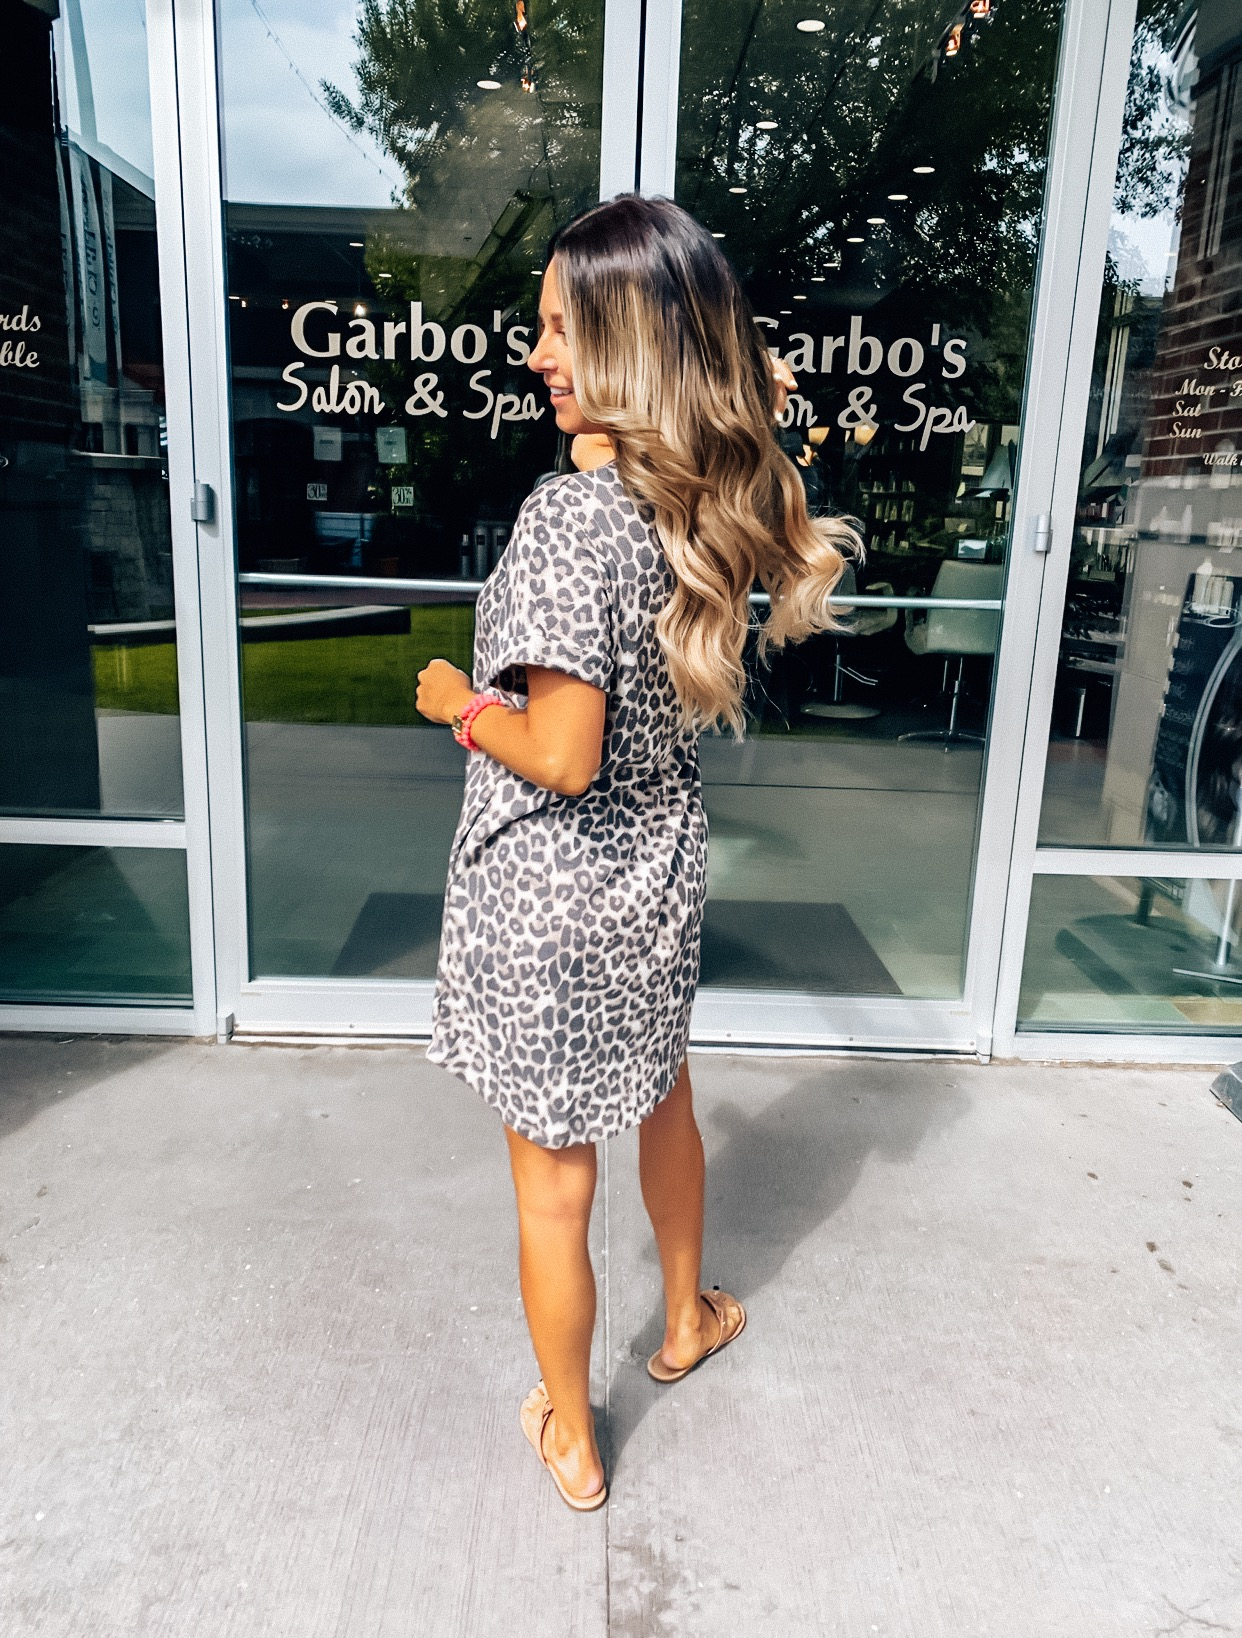 hand-tied extensions-garbo's-garbo's Omaha-garbo's village pointe-before and after-hair goals-hair transformation-hair before and after-sabby style-omaha blogger-1